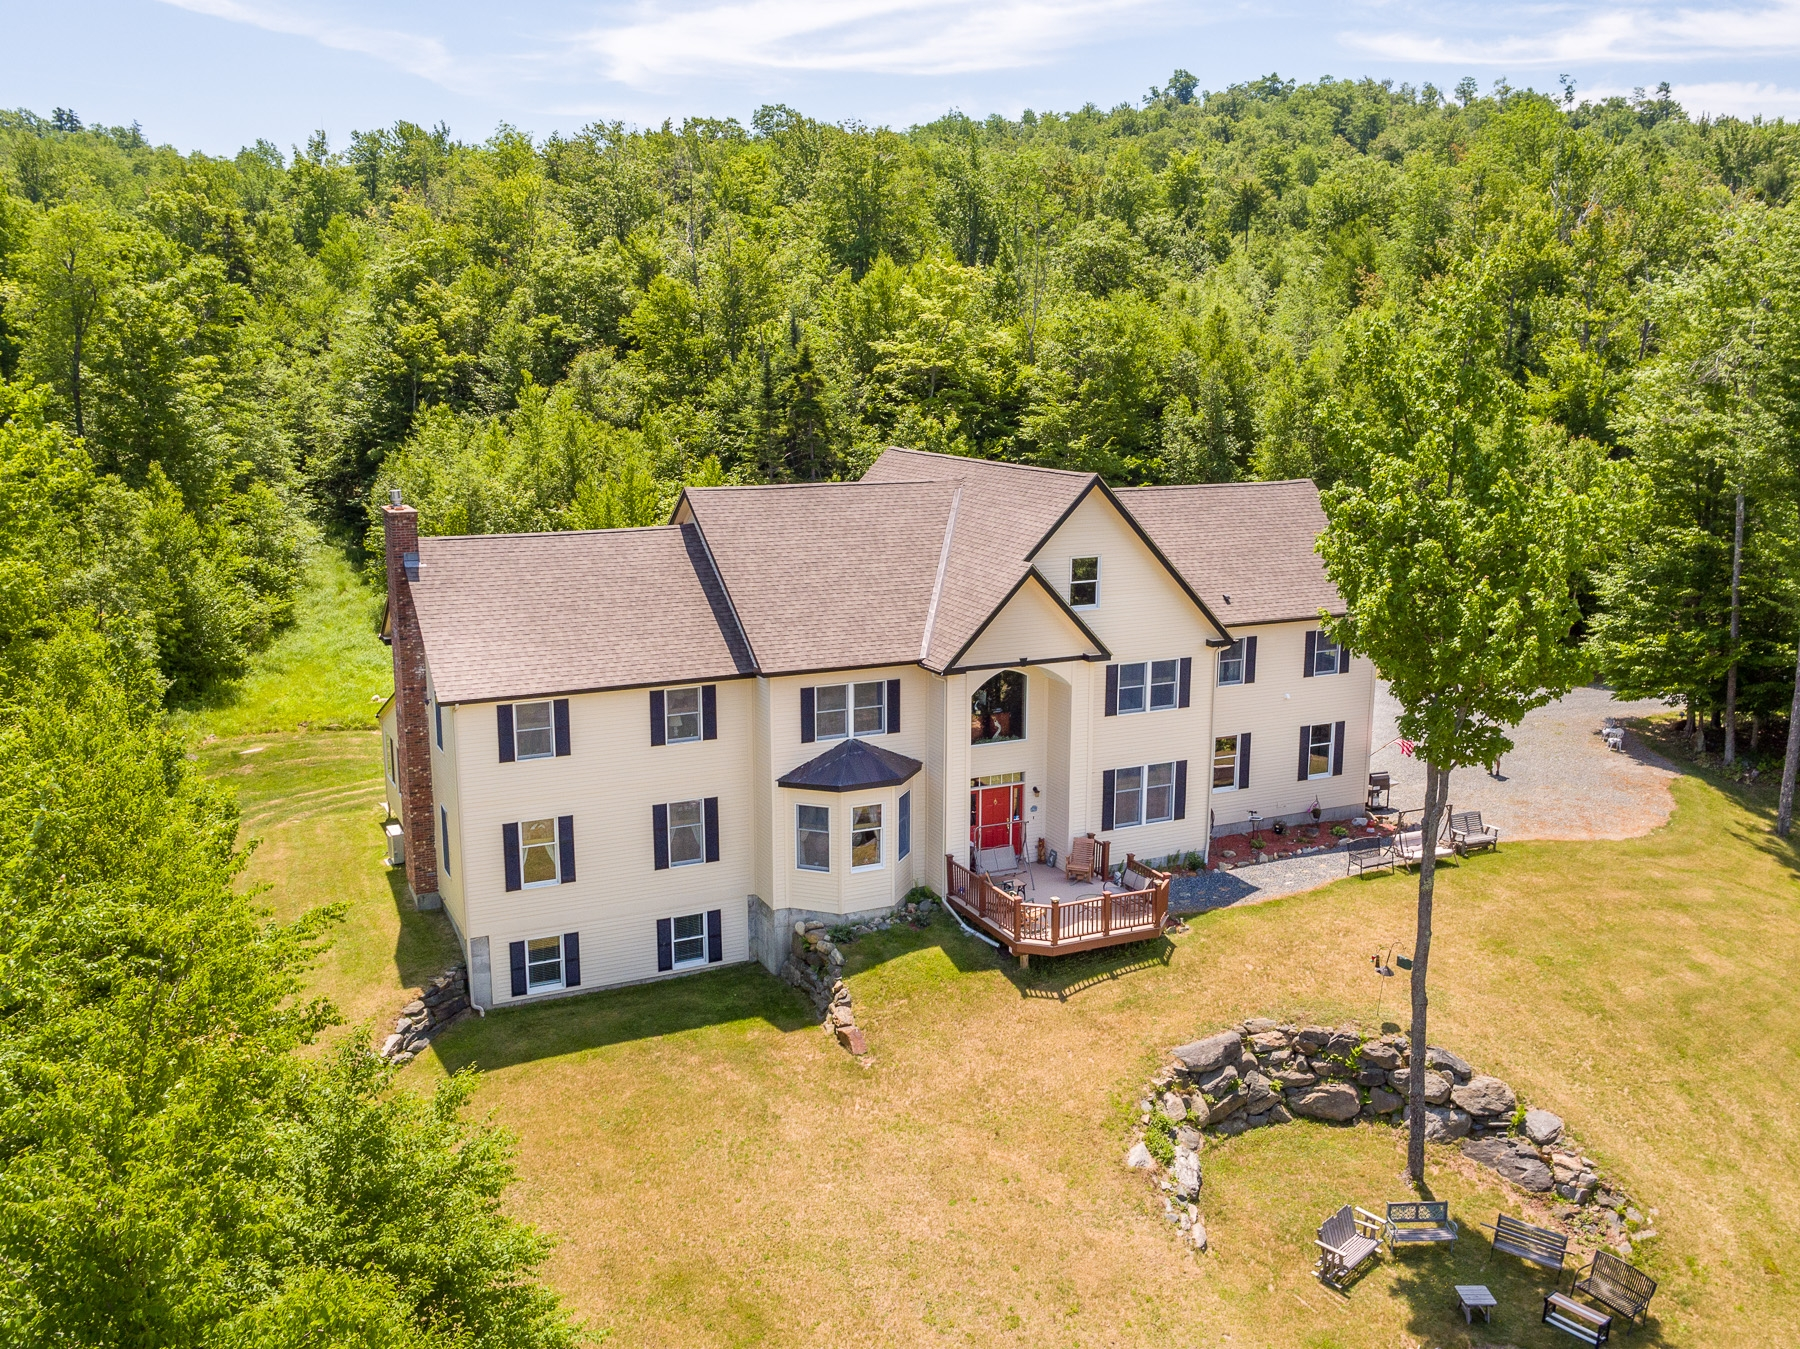 Single Family Home for Sale at 703 Miller Pond Road, Grantham 703 Miller Pond Rd Grantham, New Hampshire, 03753 United States